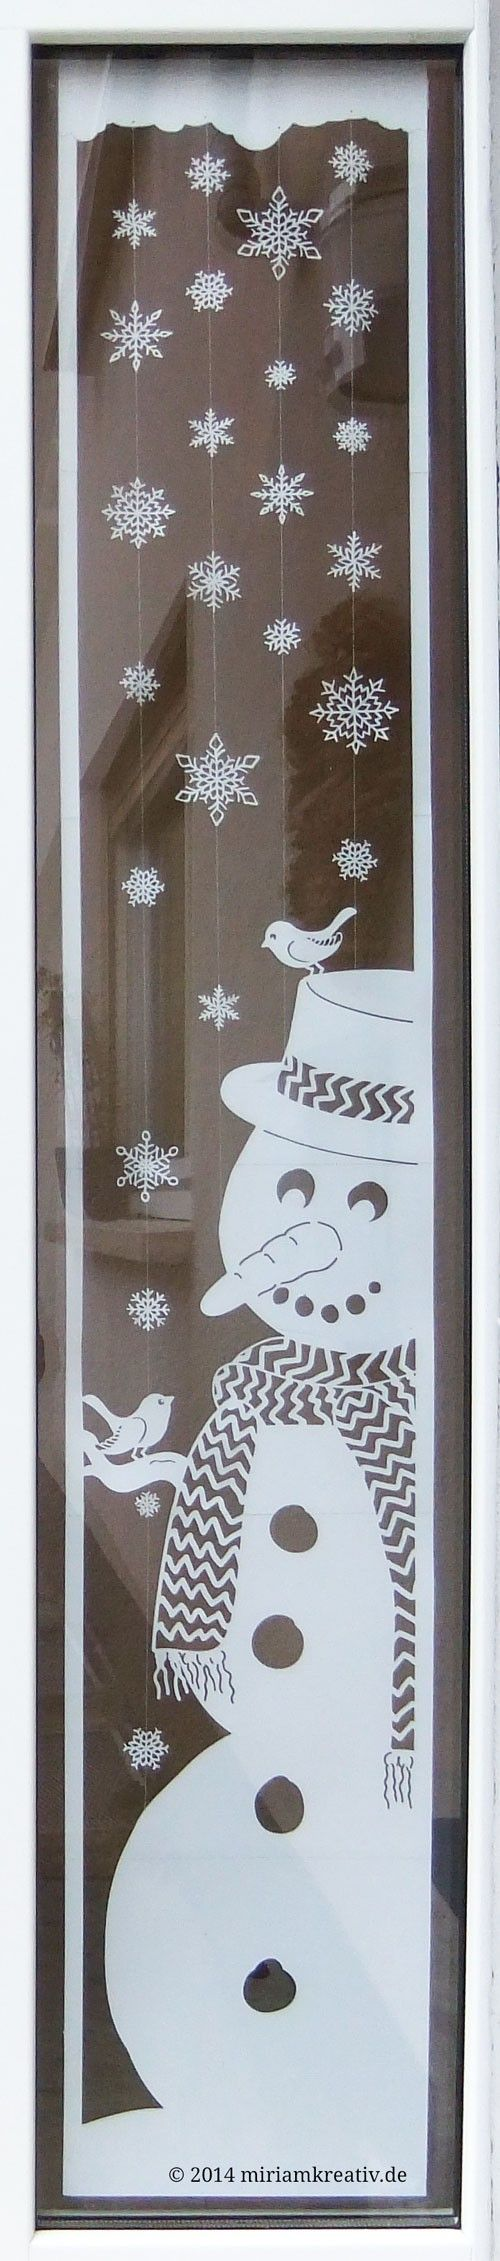 free vinyl svg files door decoration snowman --perfect for the 10 FEET cutting ability of the silhouette